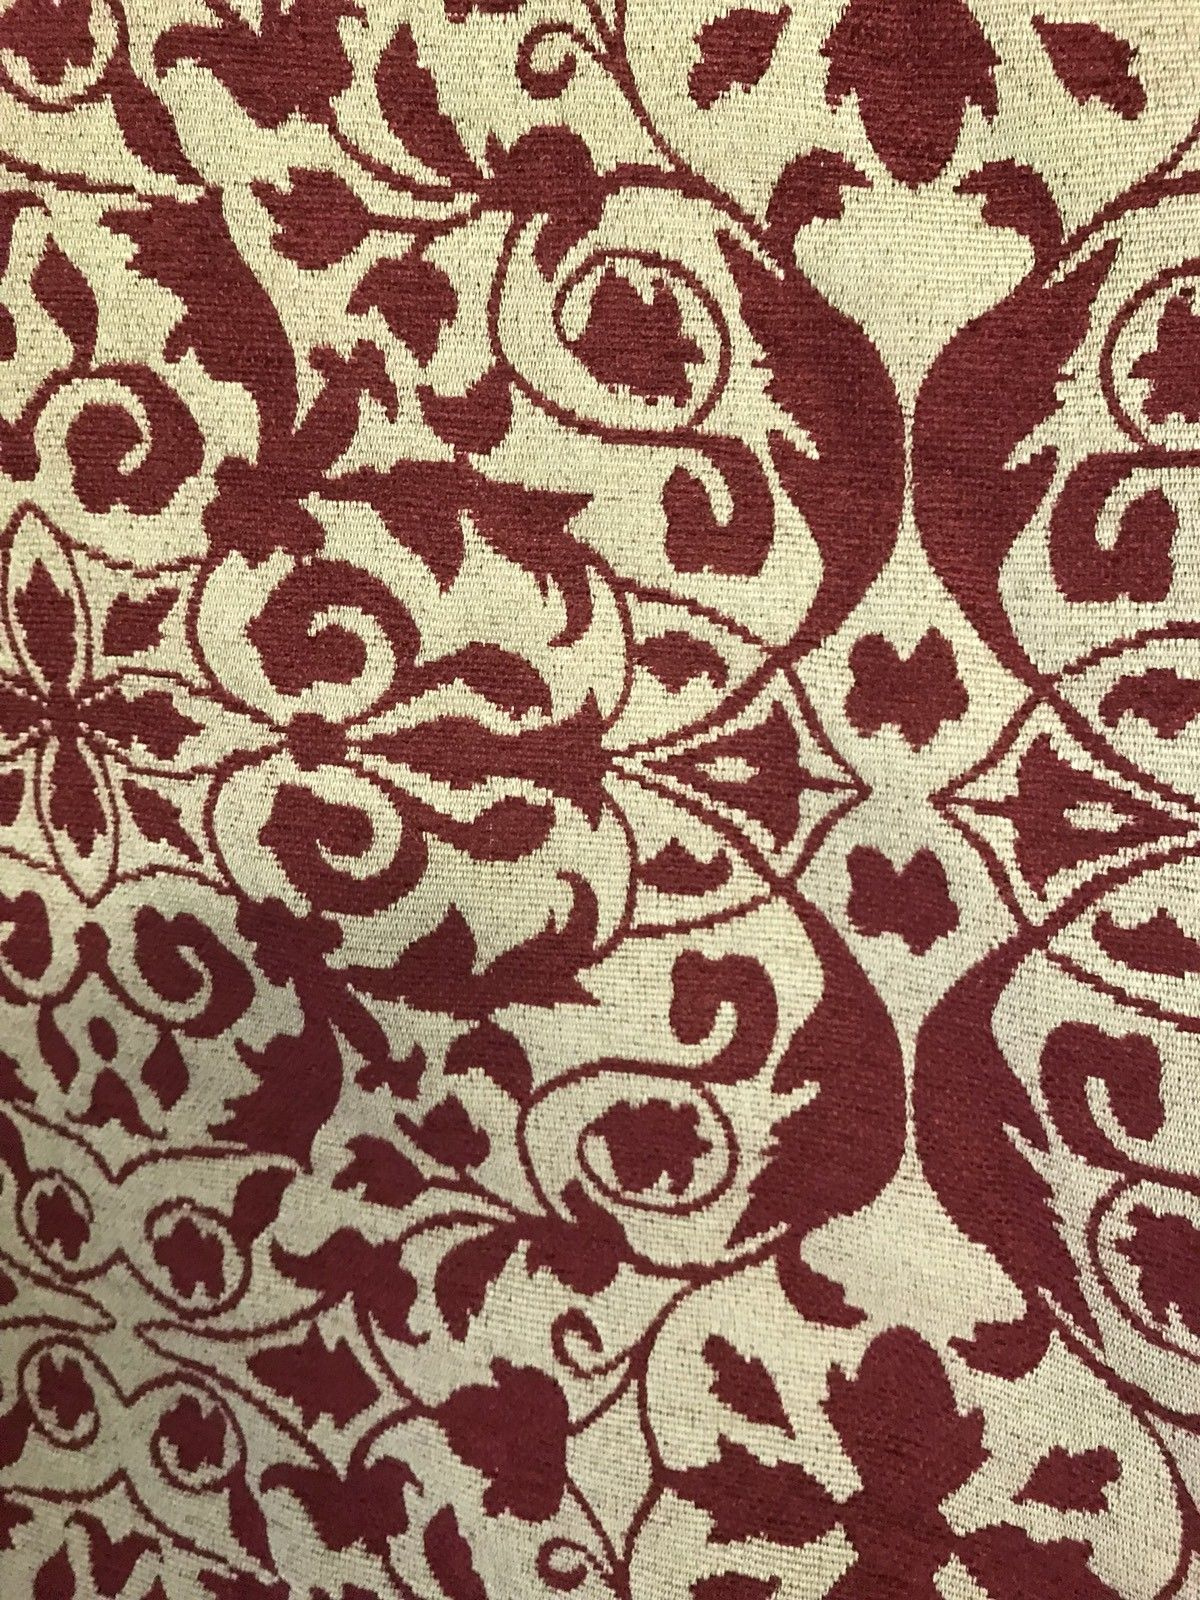 Designer Brocade Bohemian Upholstery Fabric - Red Flax- By The Yard - Fancy Styles Fabric Pierre Frey Lee Jofa